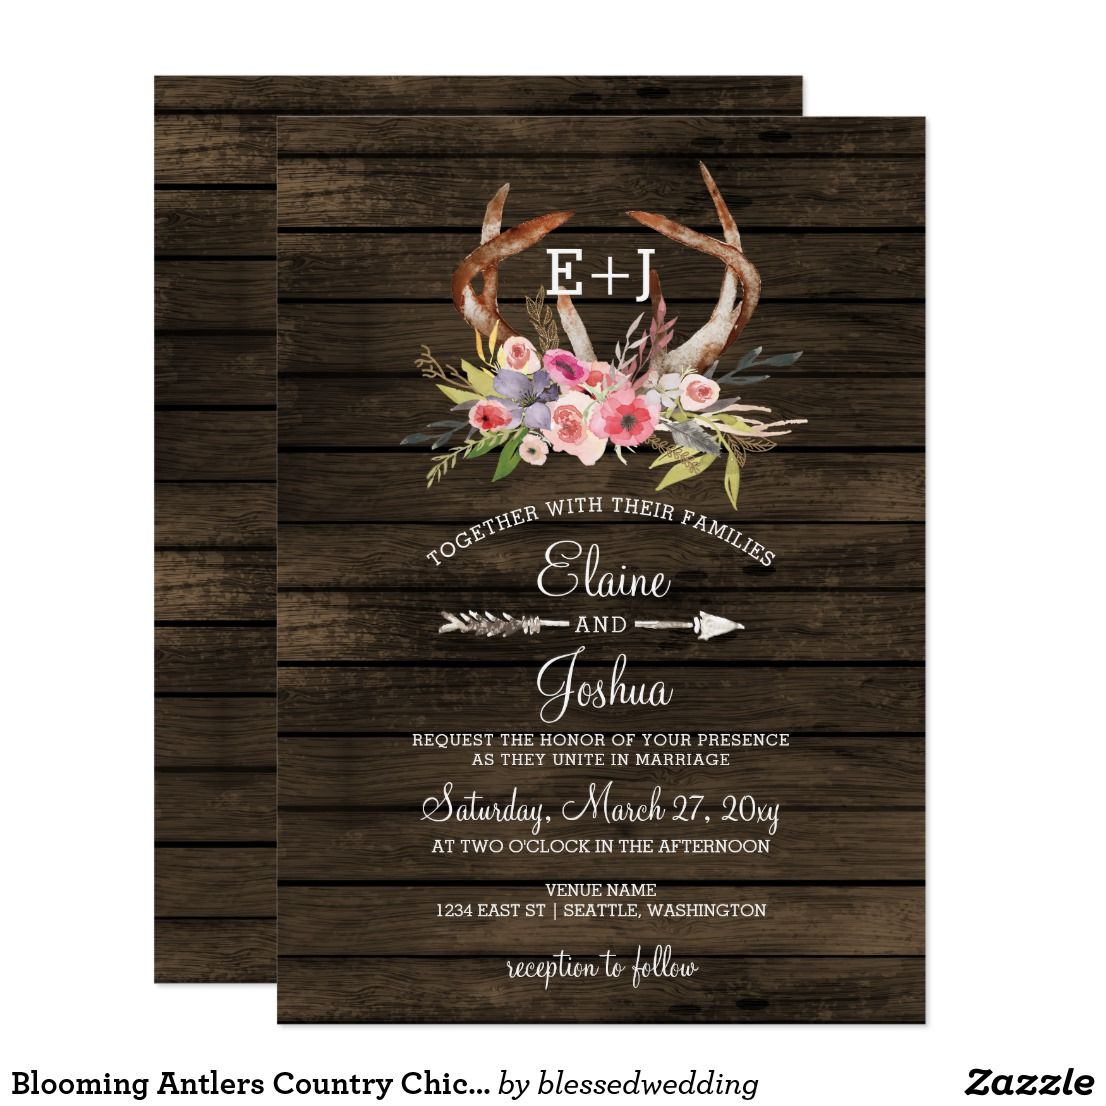 Blooming Antlers Country Chic Wedding Invitations Chic Wedding And